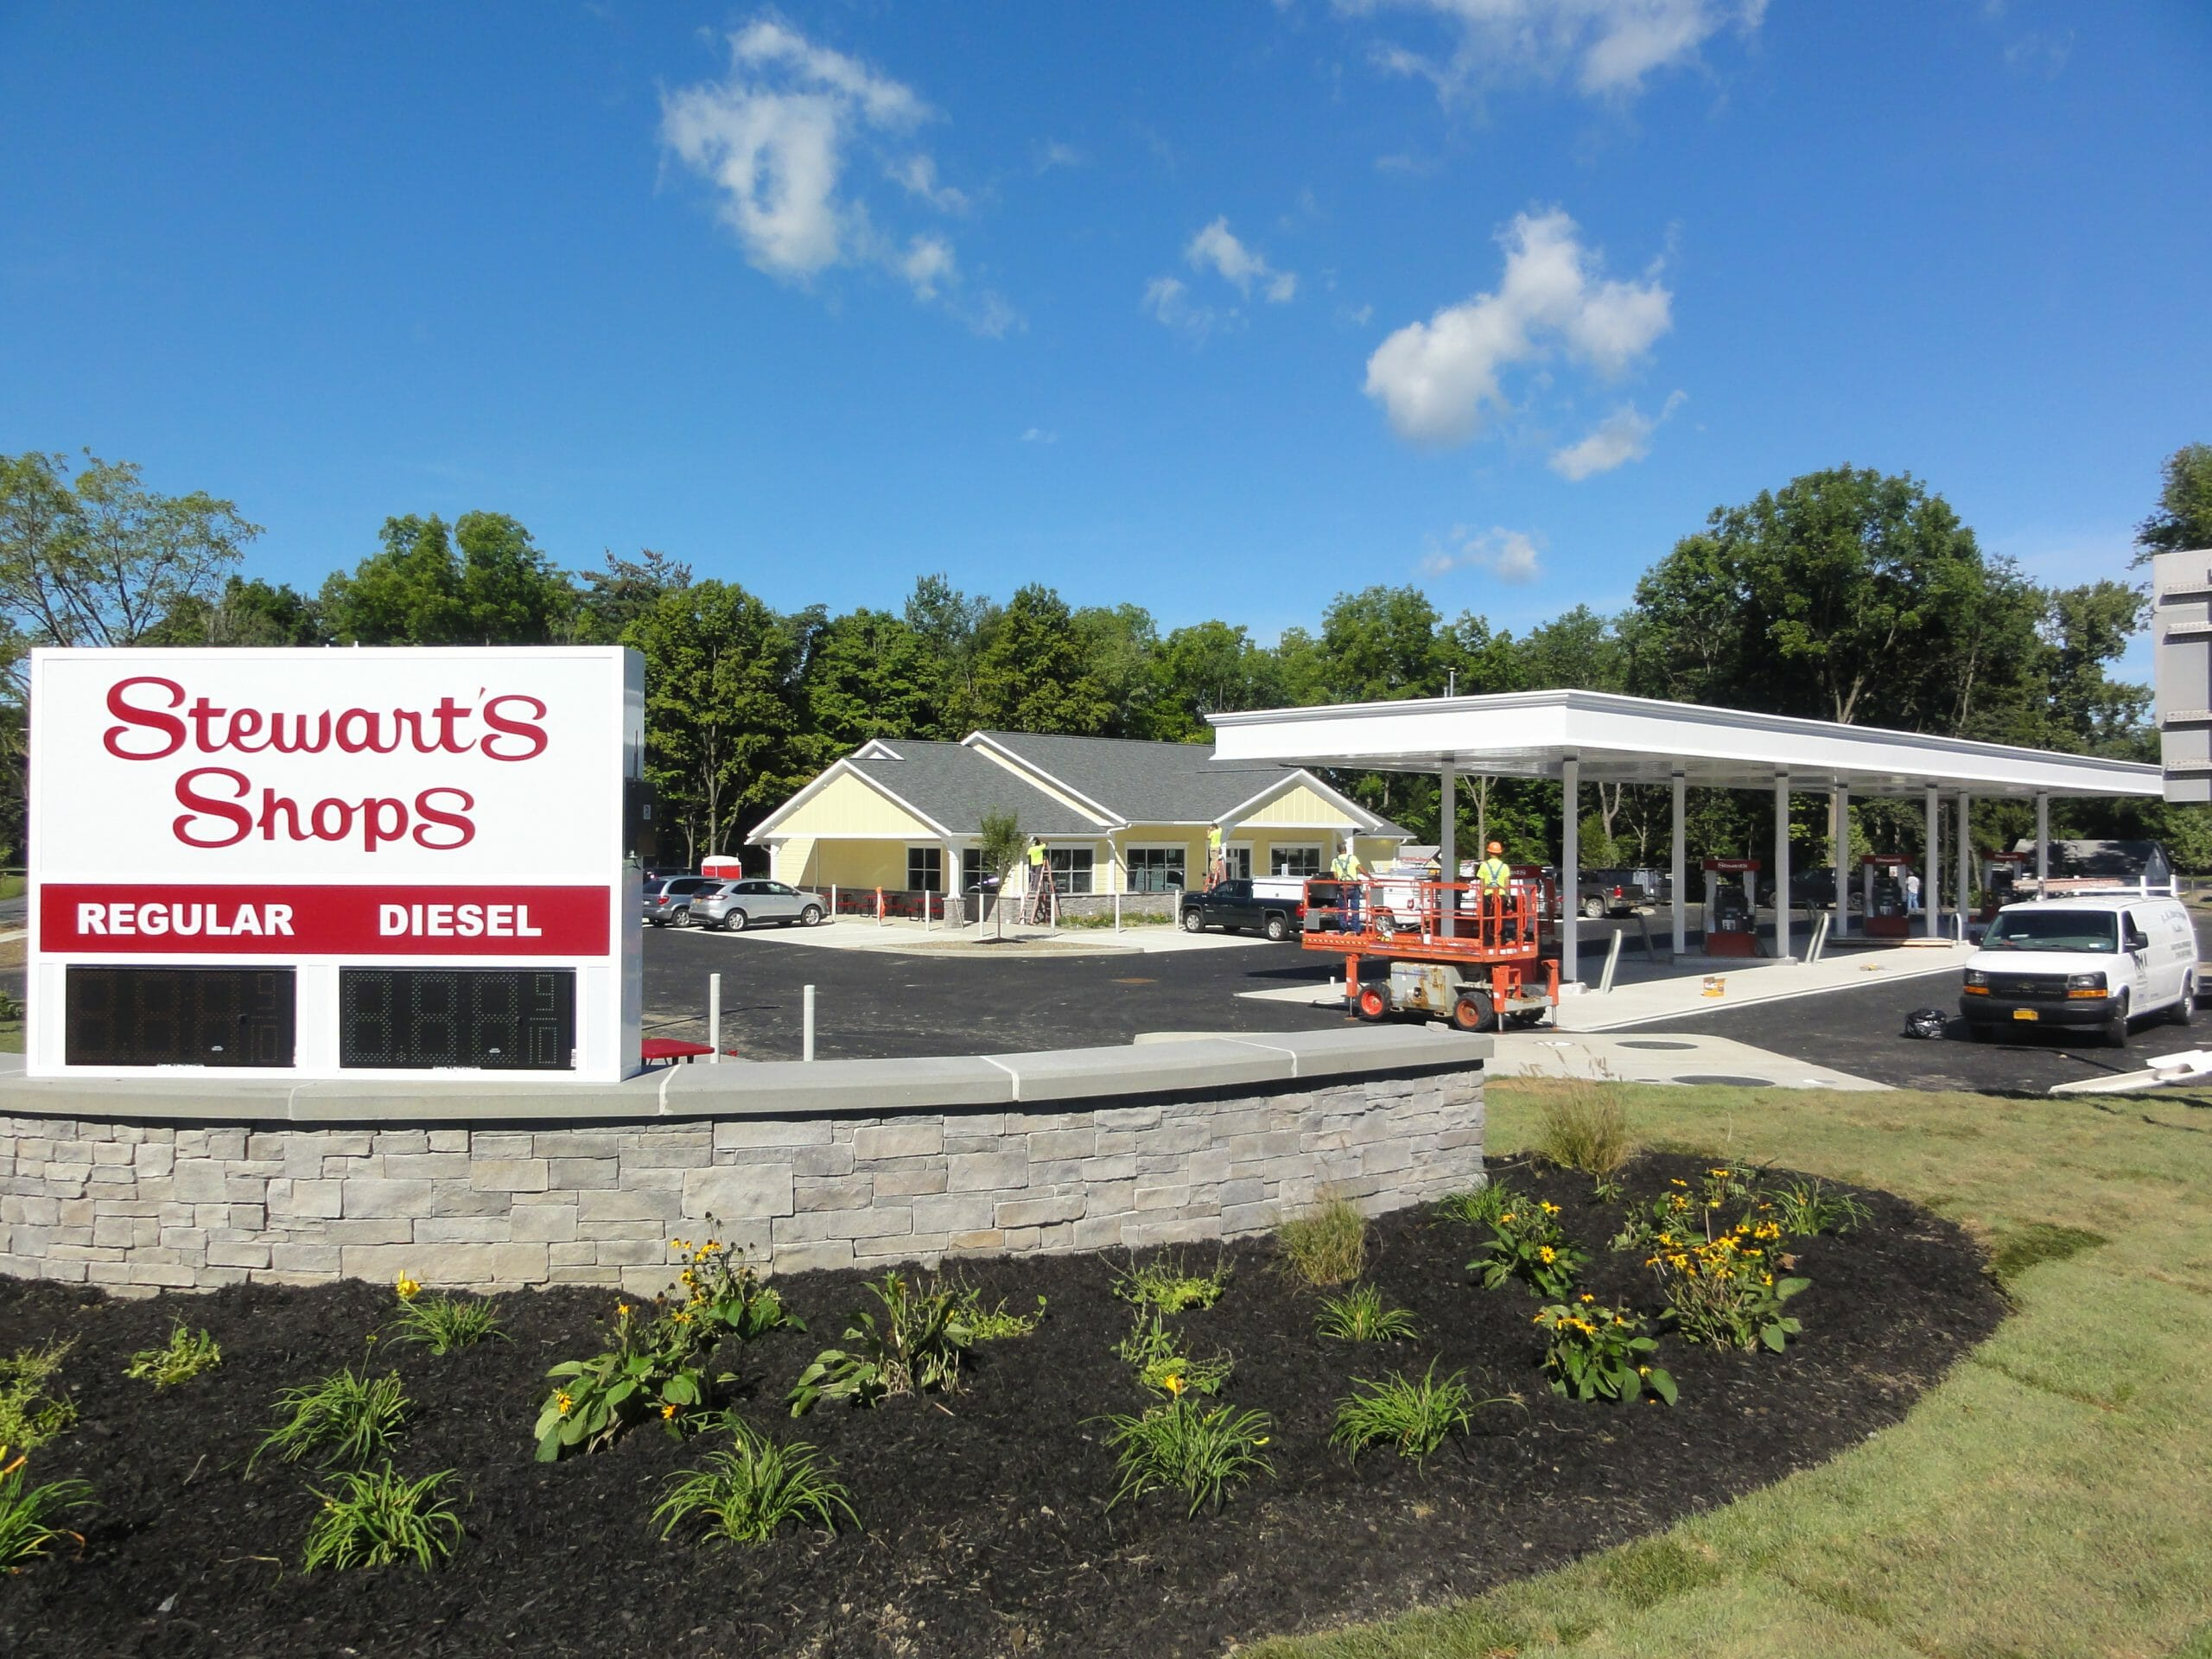 Stewart's Shop in Schodack, NY showing gas island and shop exterior